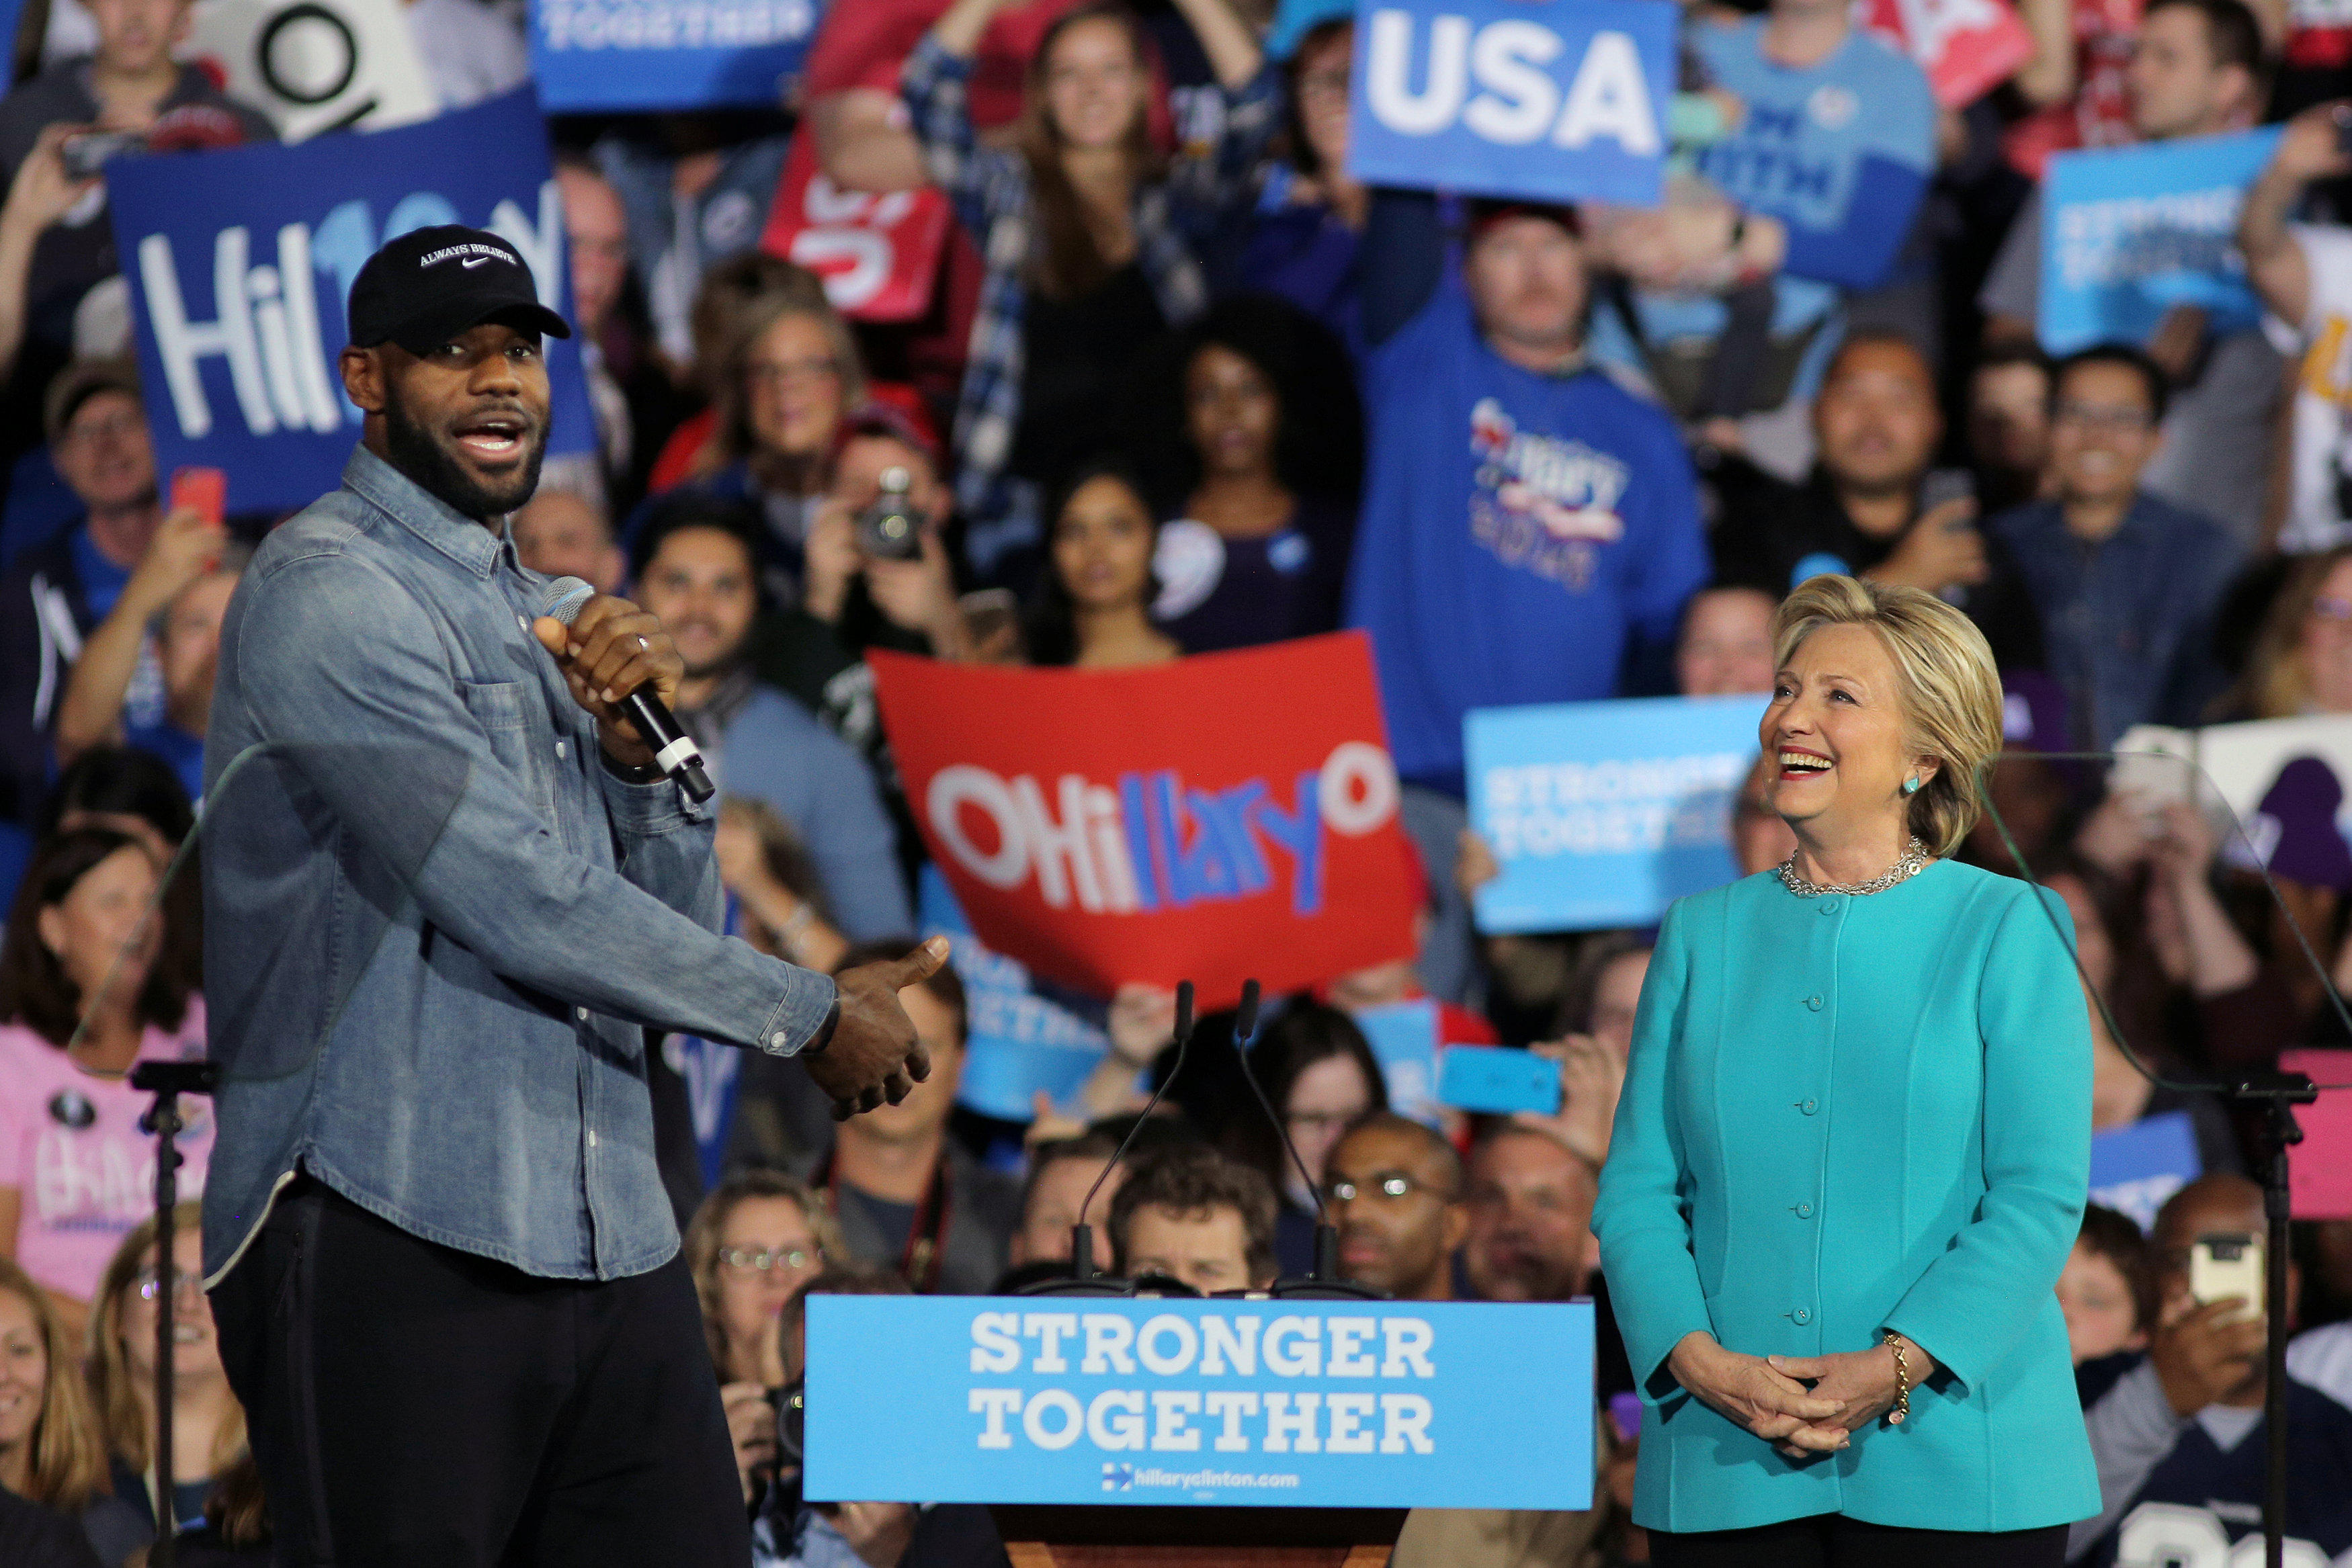 LeBron James, J.R. Smith campaign with Hillary Clinton in ...